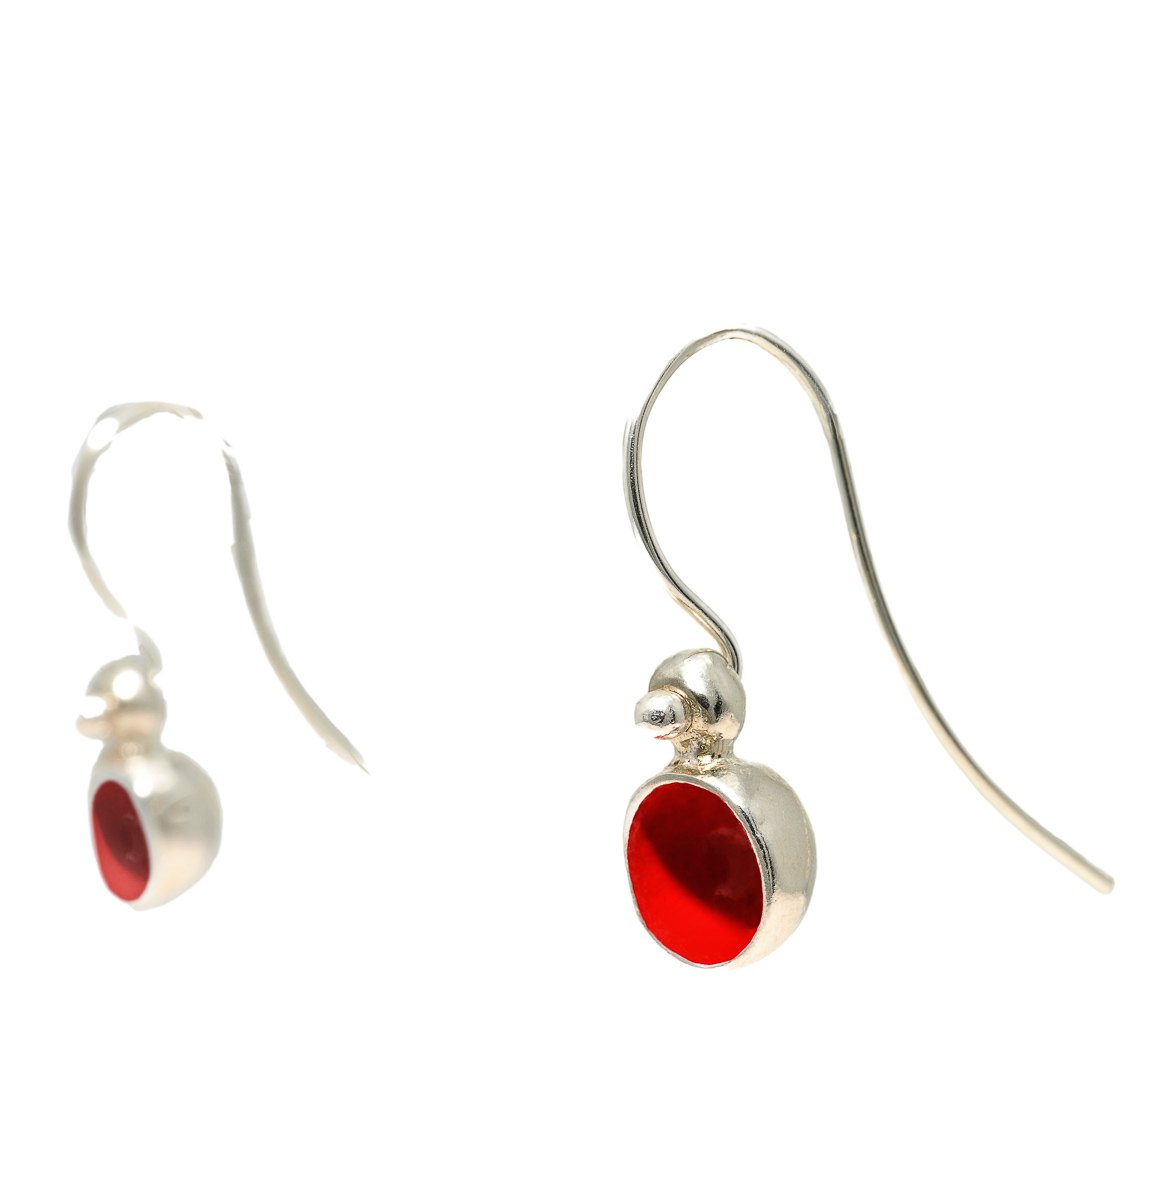 """""""Seeds and Pits"""" earrings in sterling silver, colored with enamel paint. Design and handmade for Bead A Boo jewelry by Katerina Glinou."""